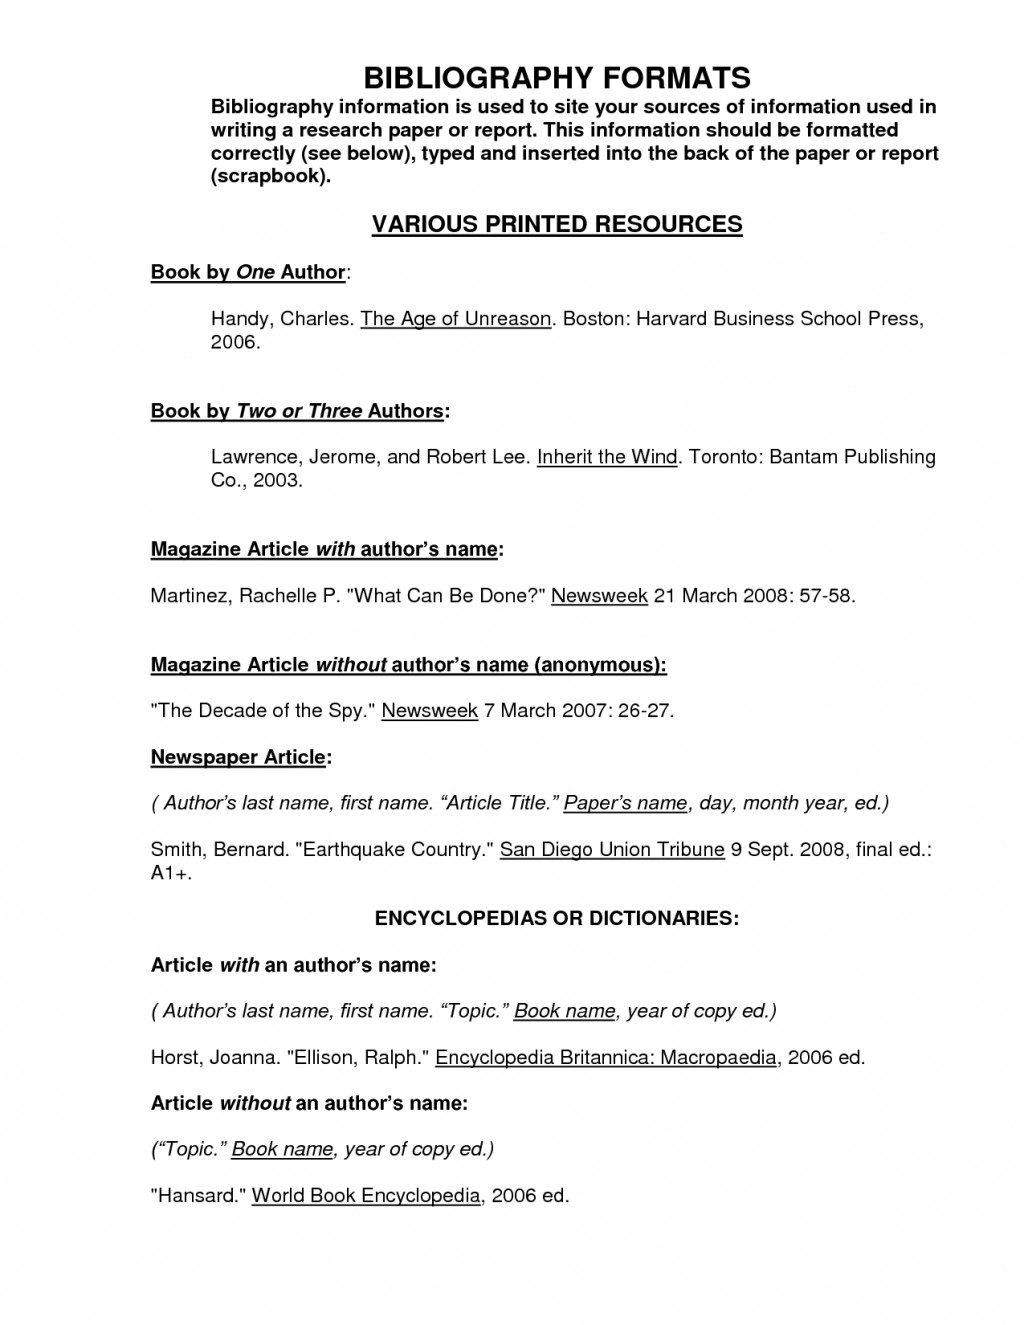 001 Research Paper Bibliography Format 82583 For Awesome References Layout Of A Apa Style Outline Example Large